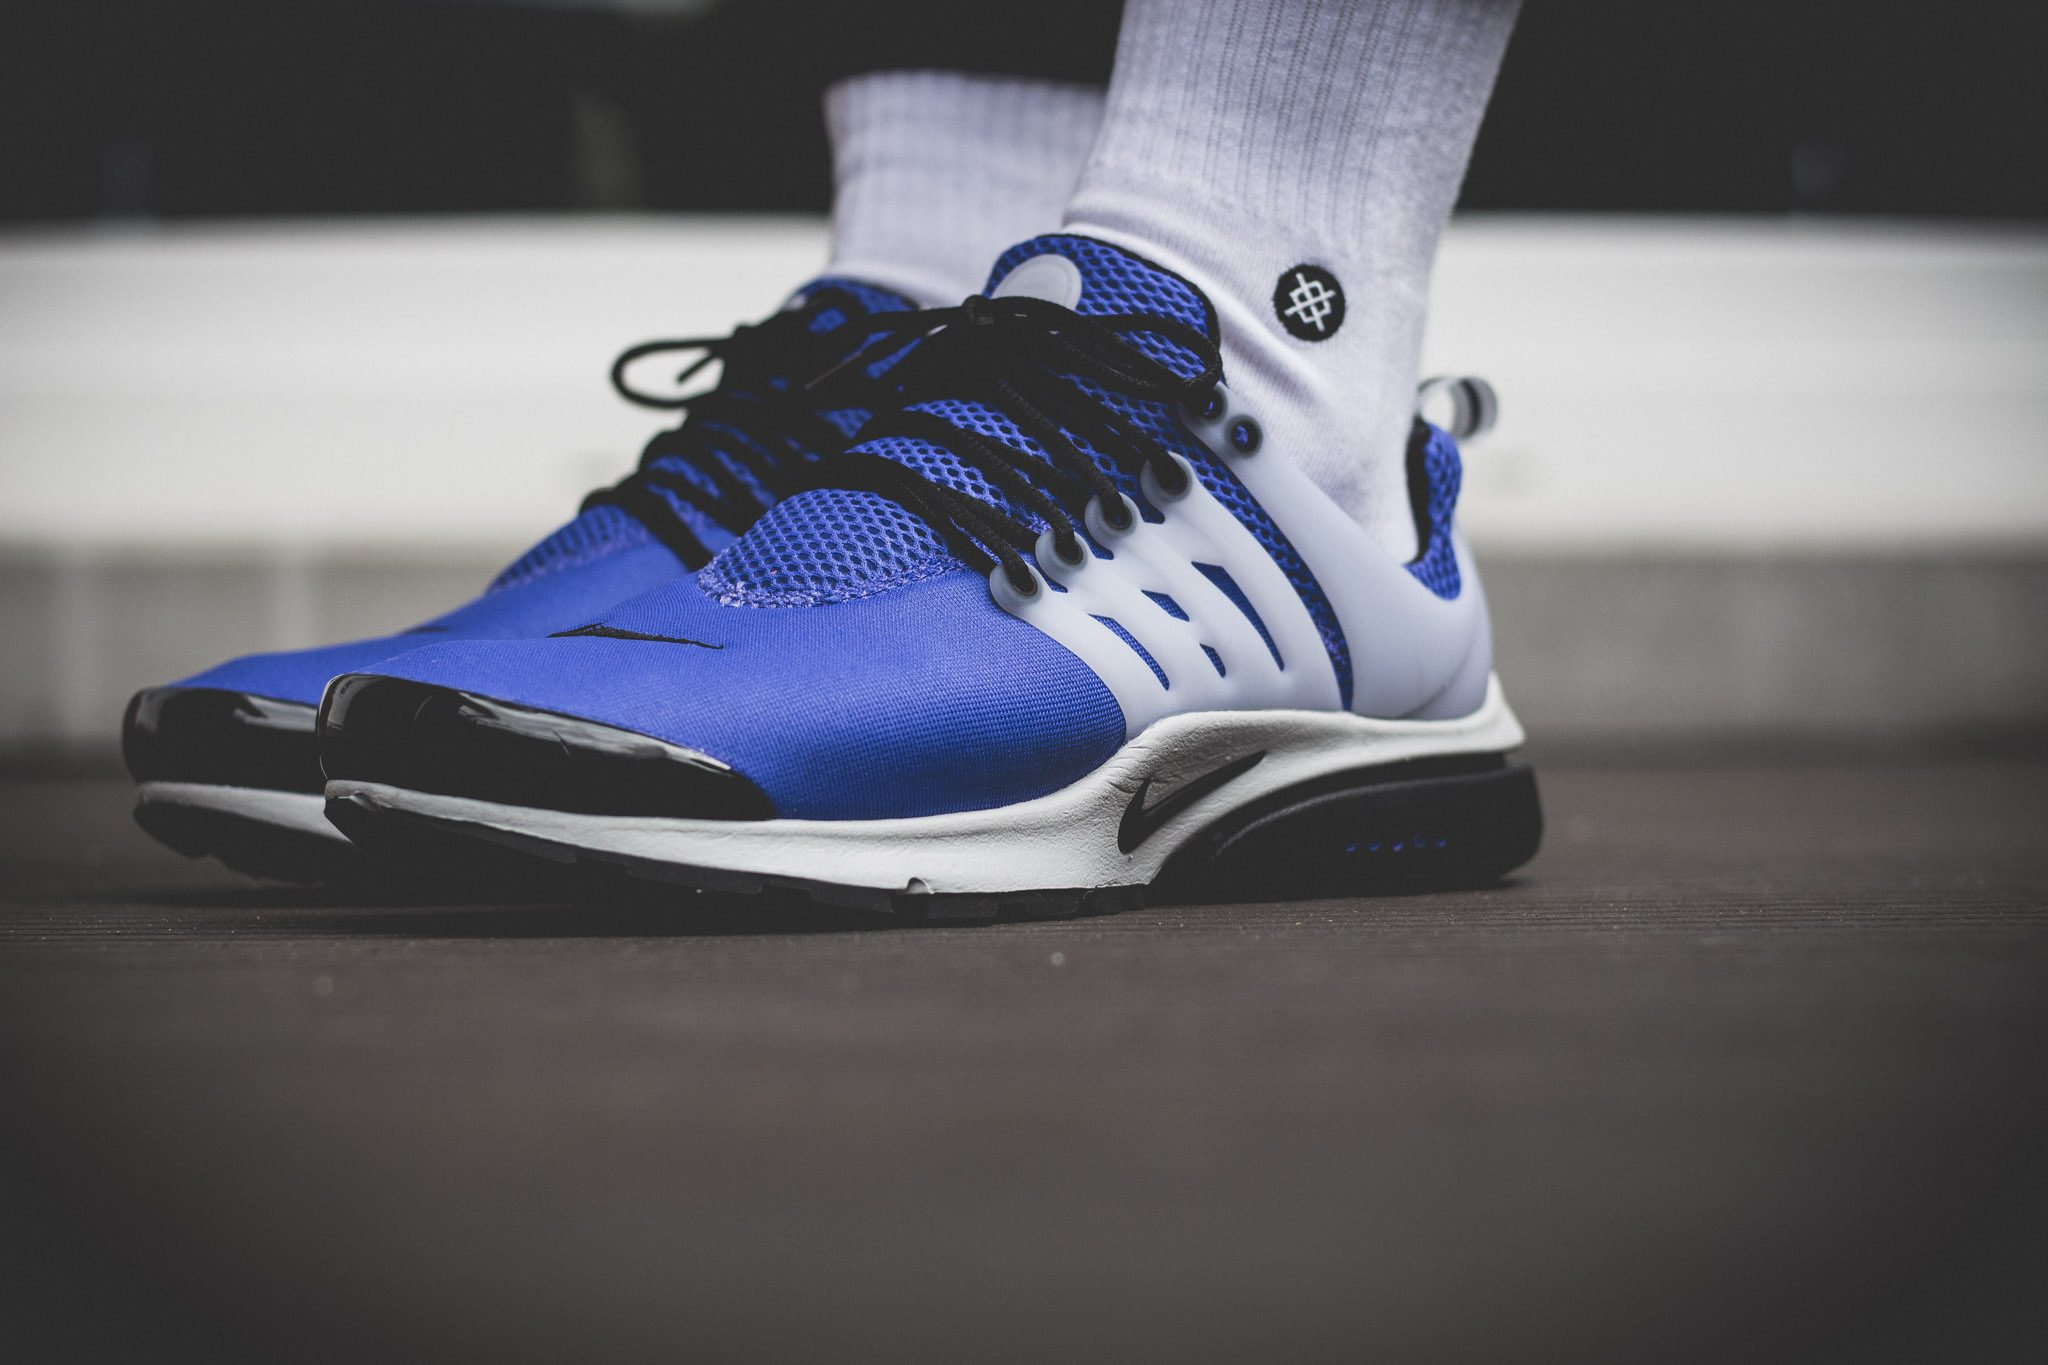 Nike Air Presto Persion Violet On Feet 4